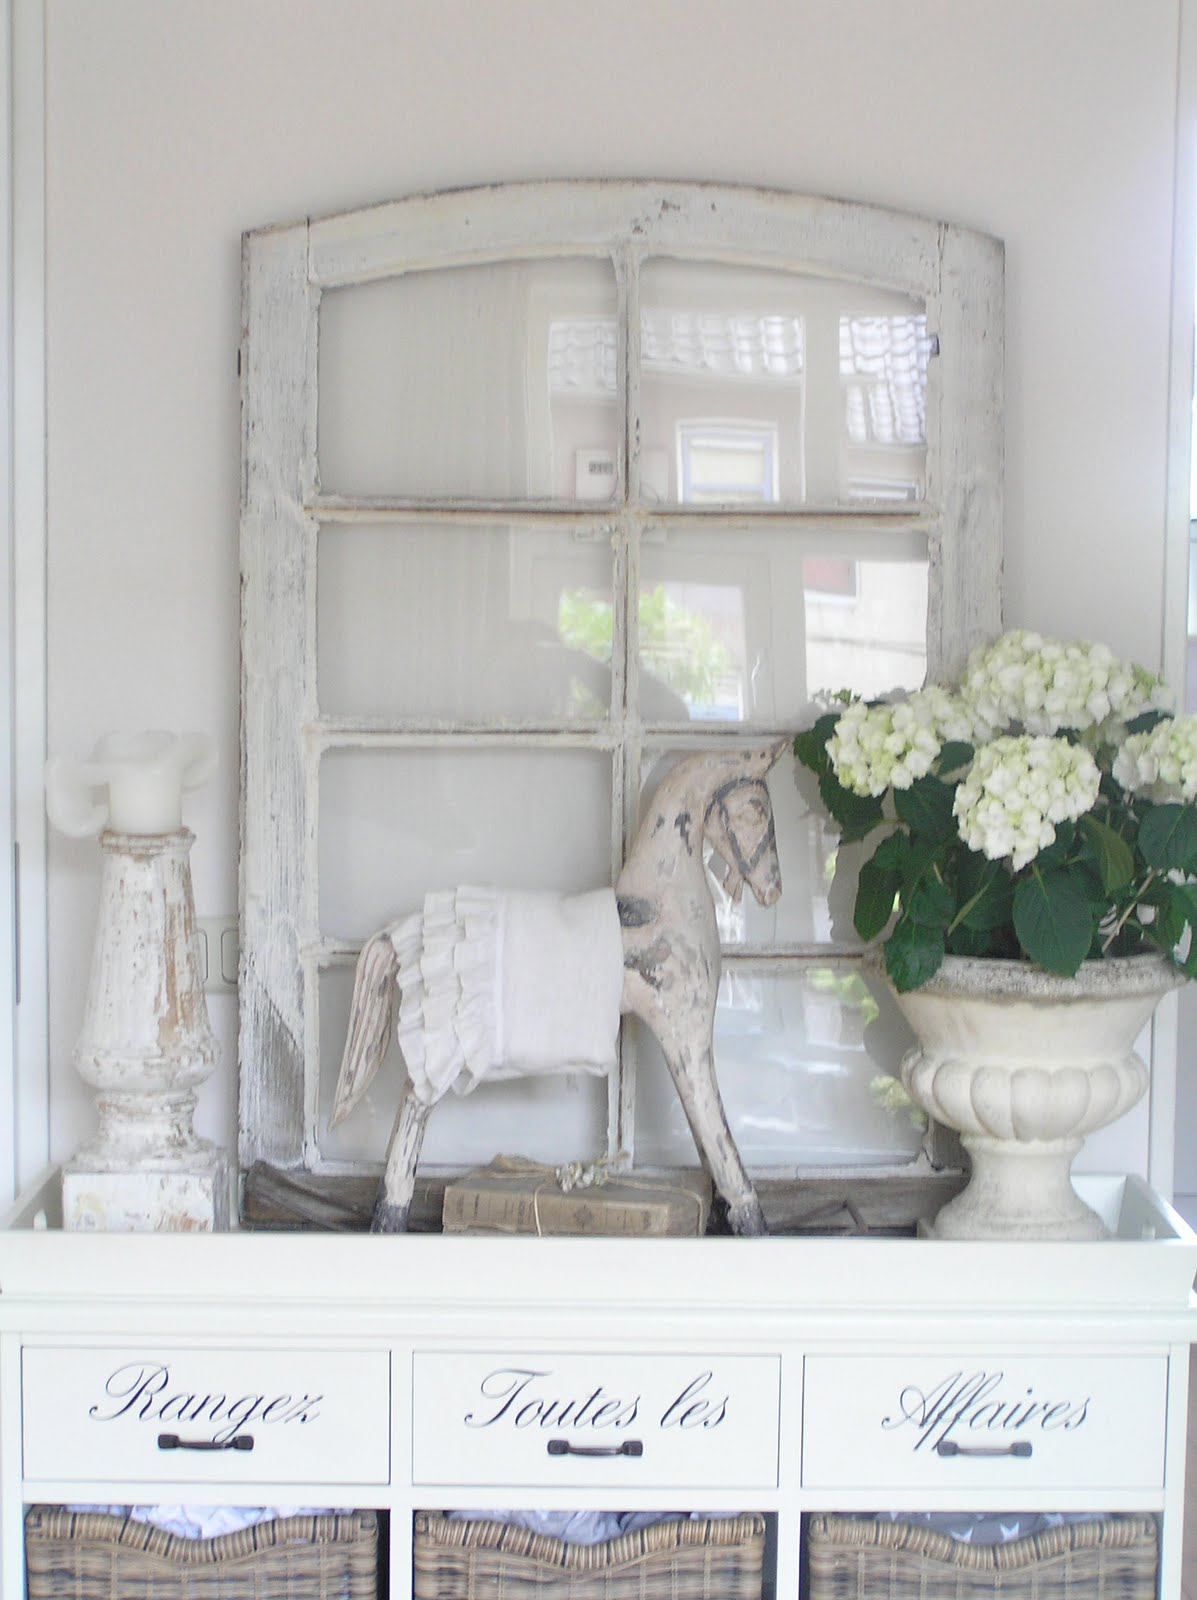 Pastels and whites: frans raamkozijn an old french window